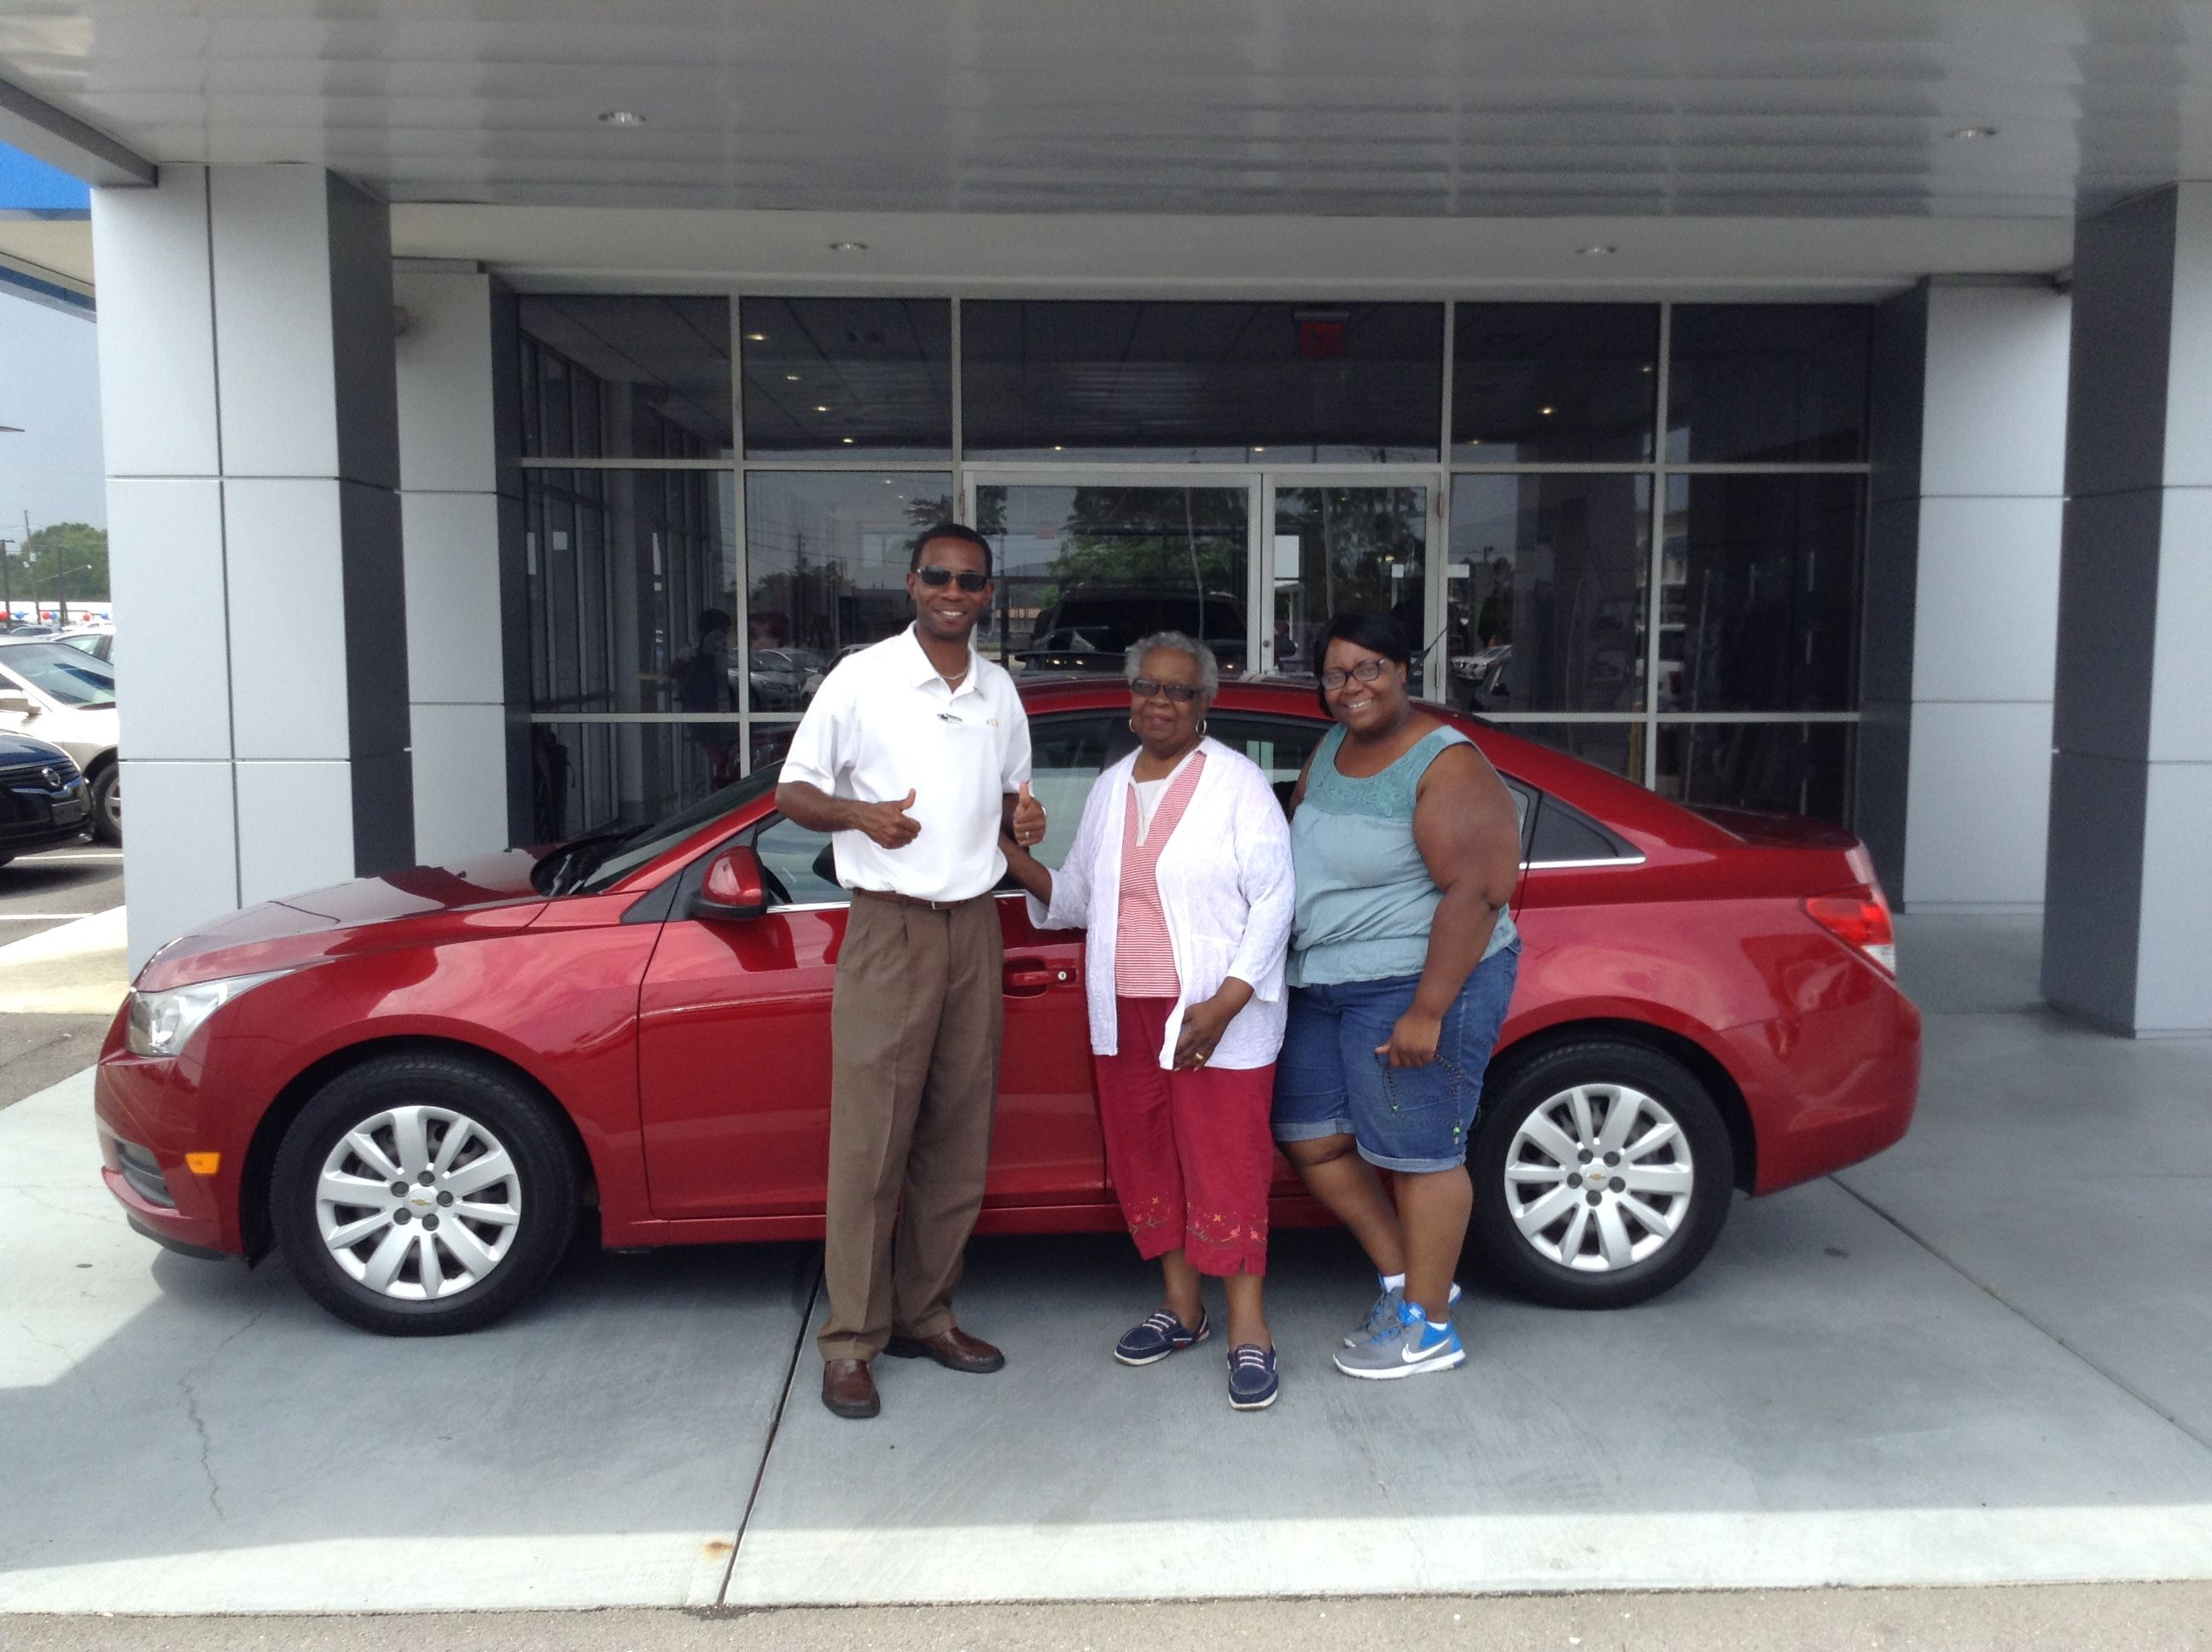 """We would like to thank Jacqueline Jackson and her daughter, Melody, for their purchase of this nice red 2011 Chevrolet Cruze, one of our GM Certified vehicles. Melody will be """"cruisin'"""" in her Cruze back to Little Rock, where she lives. Jacqueline lives here locally. You can explore the benefits of purchasing a GM Certified vehicle by visiting our dealership or the following link online: http://www.bigochevycadillac.com/CertifiedVehicles"""